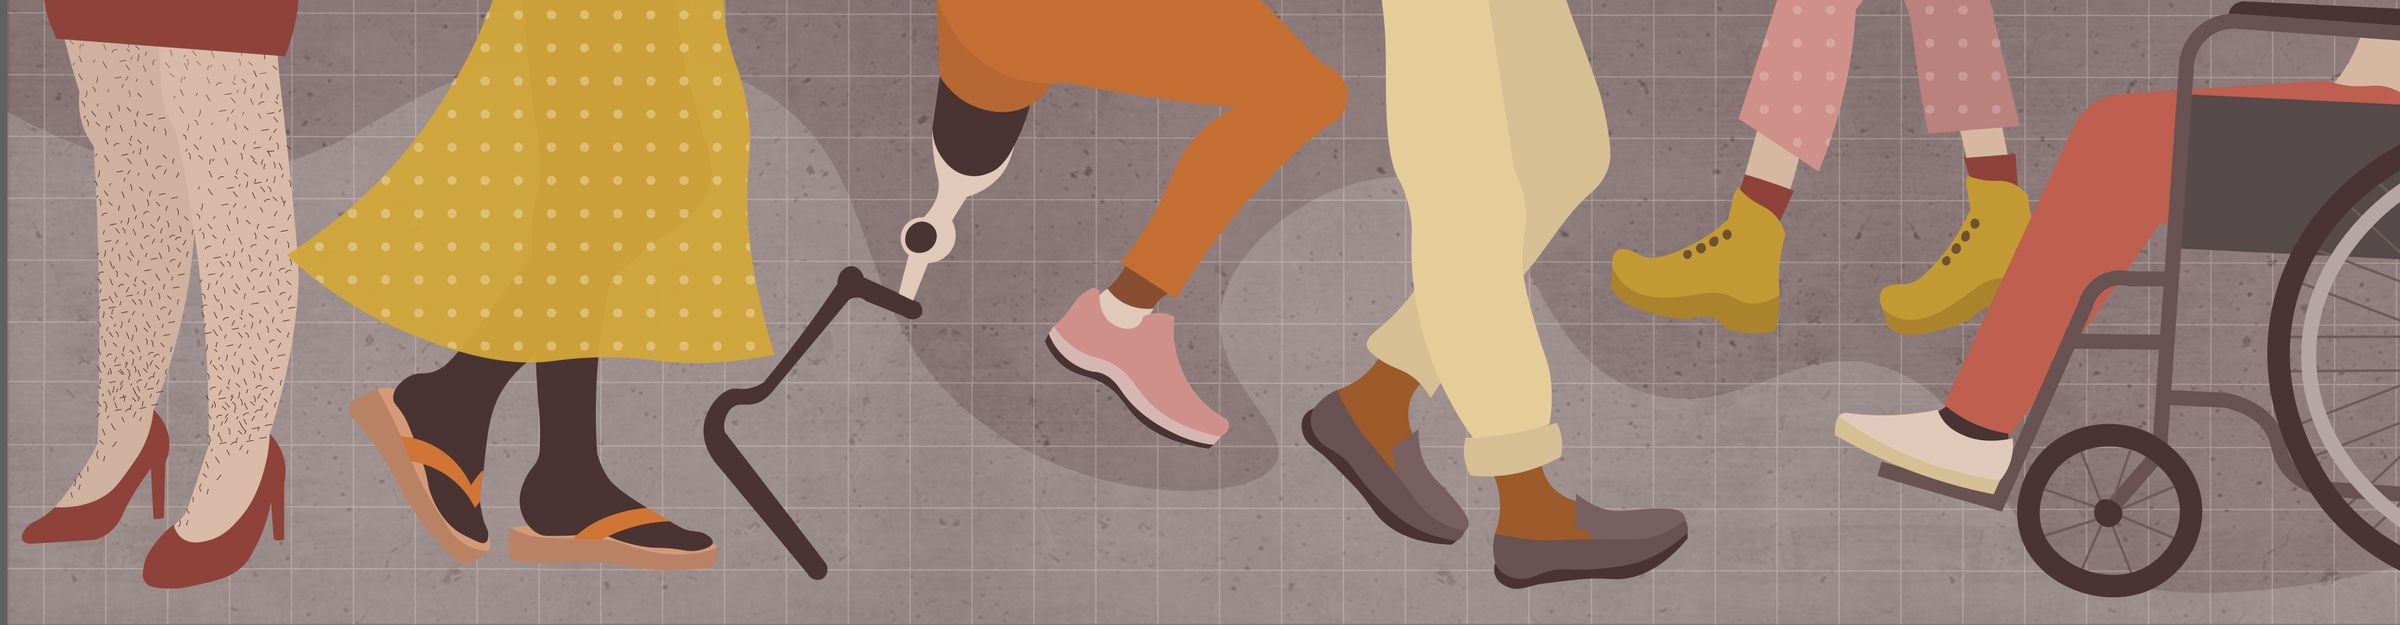 Illustration of the lower half of six different people's bodies. From left to right, a person in heels with hairy legs, a person with a skirt on and thongs, a person with one artificial leg and one non-artifical leg, a person with pants and brogues, a person in boots and a person in a wheelchair.